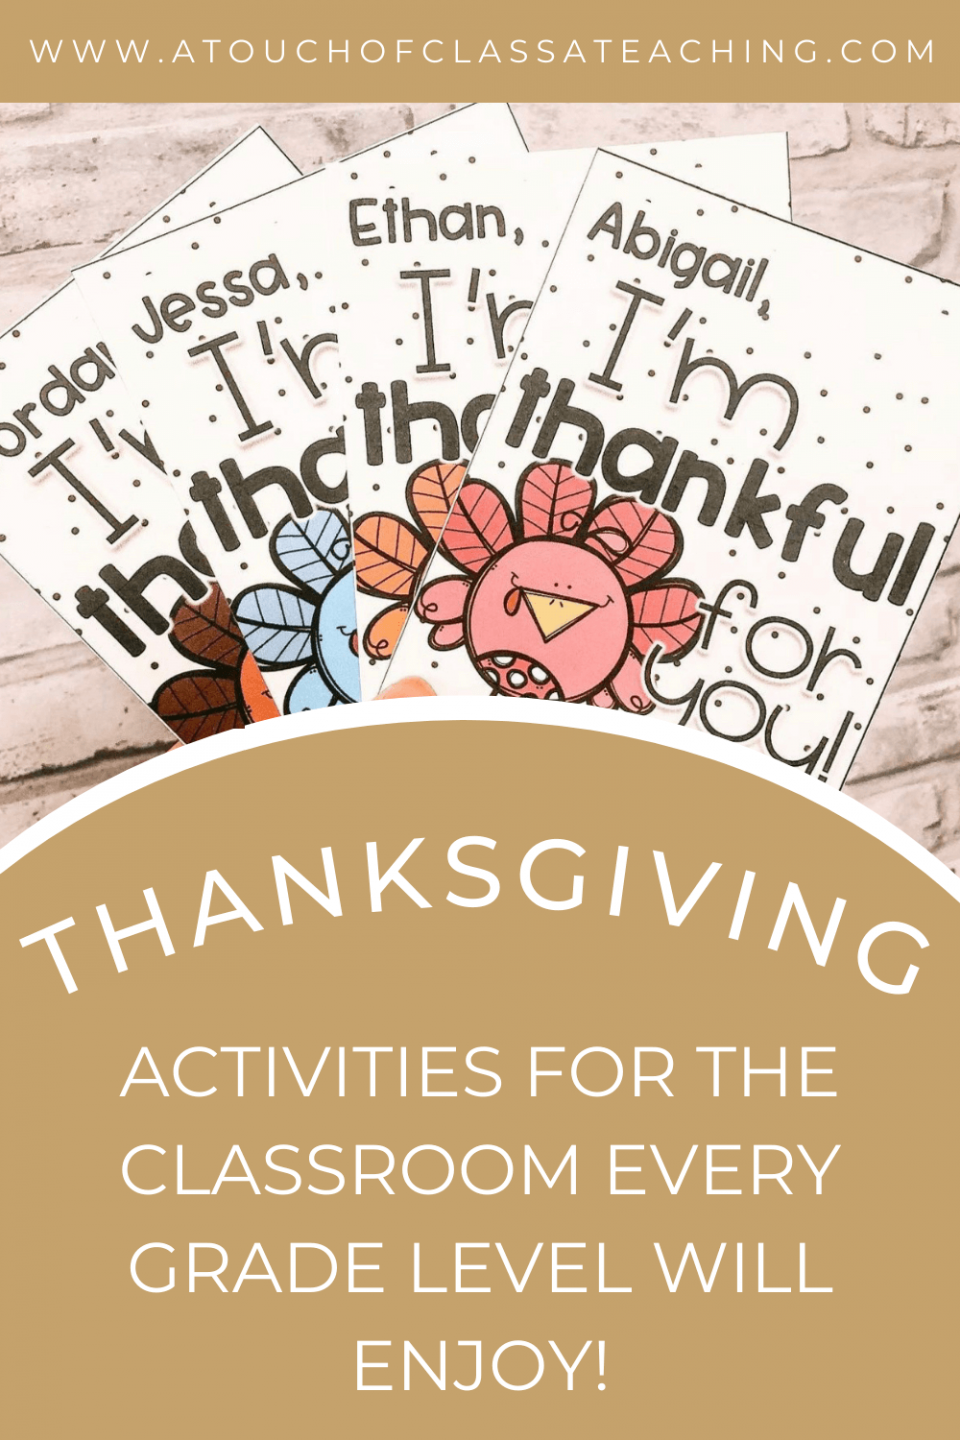 Thanksgiving Activities for the classroom that every grade level will enjoy.